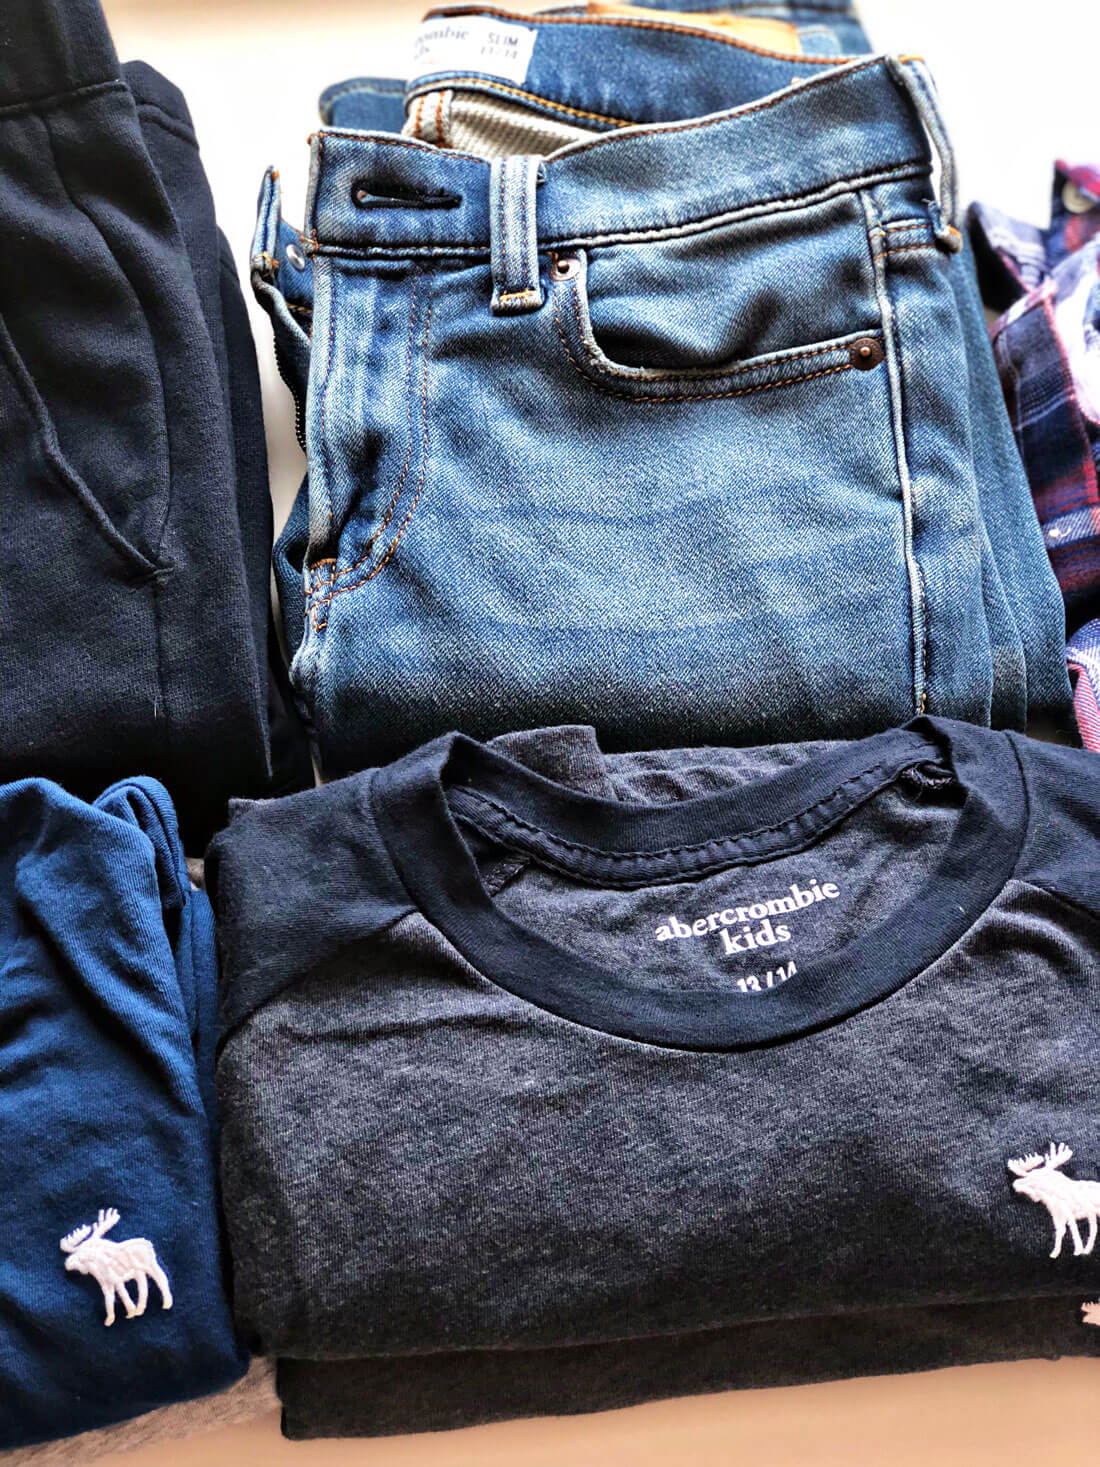 How to make a capsule wardrobe for kids - perfect for back to school! www.thirtyhandmadedays.com